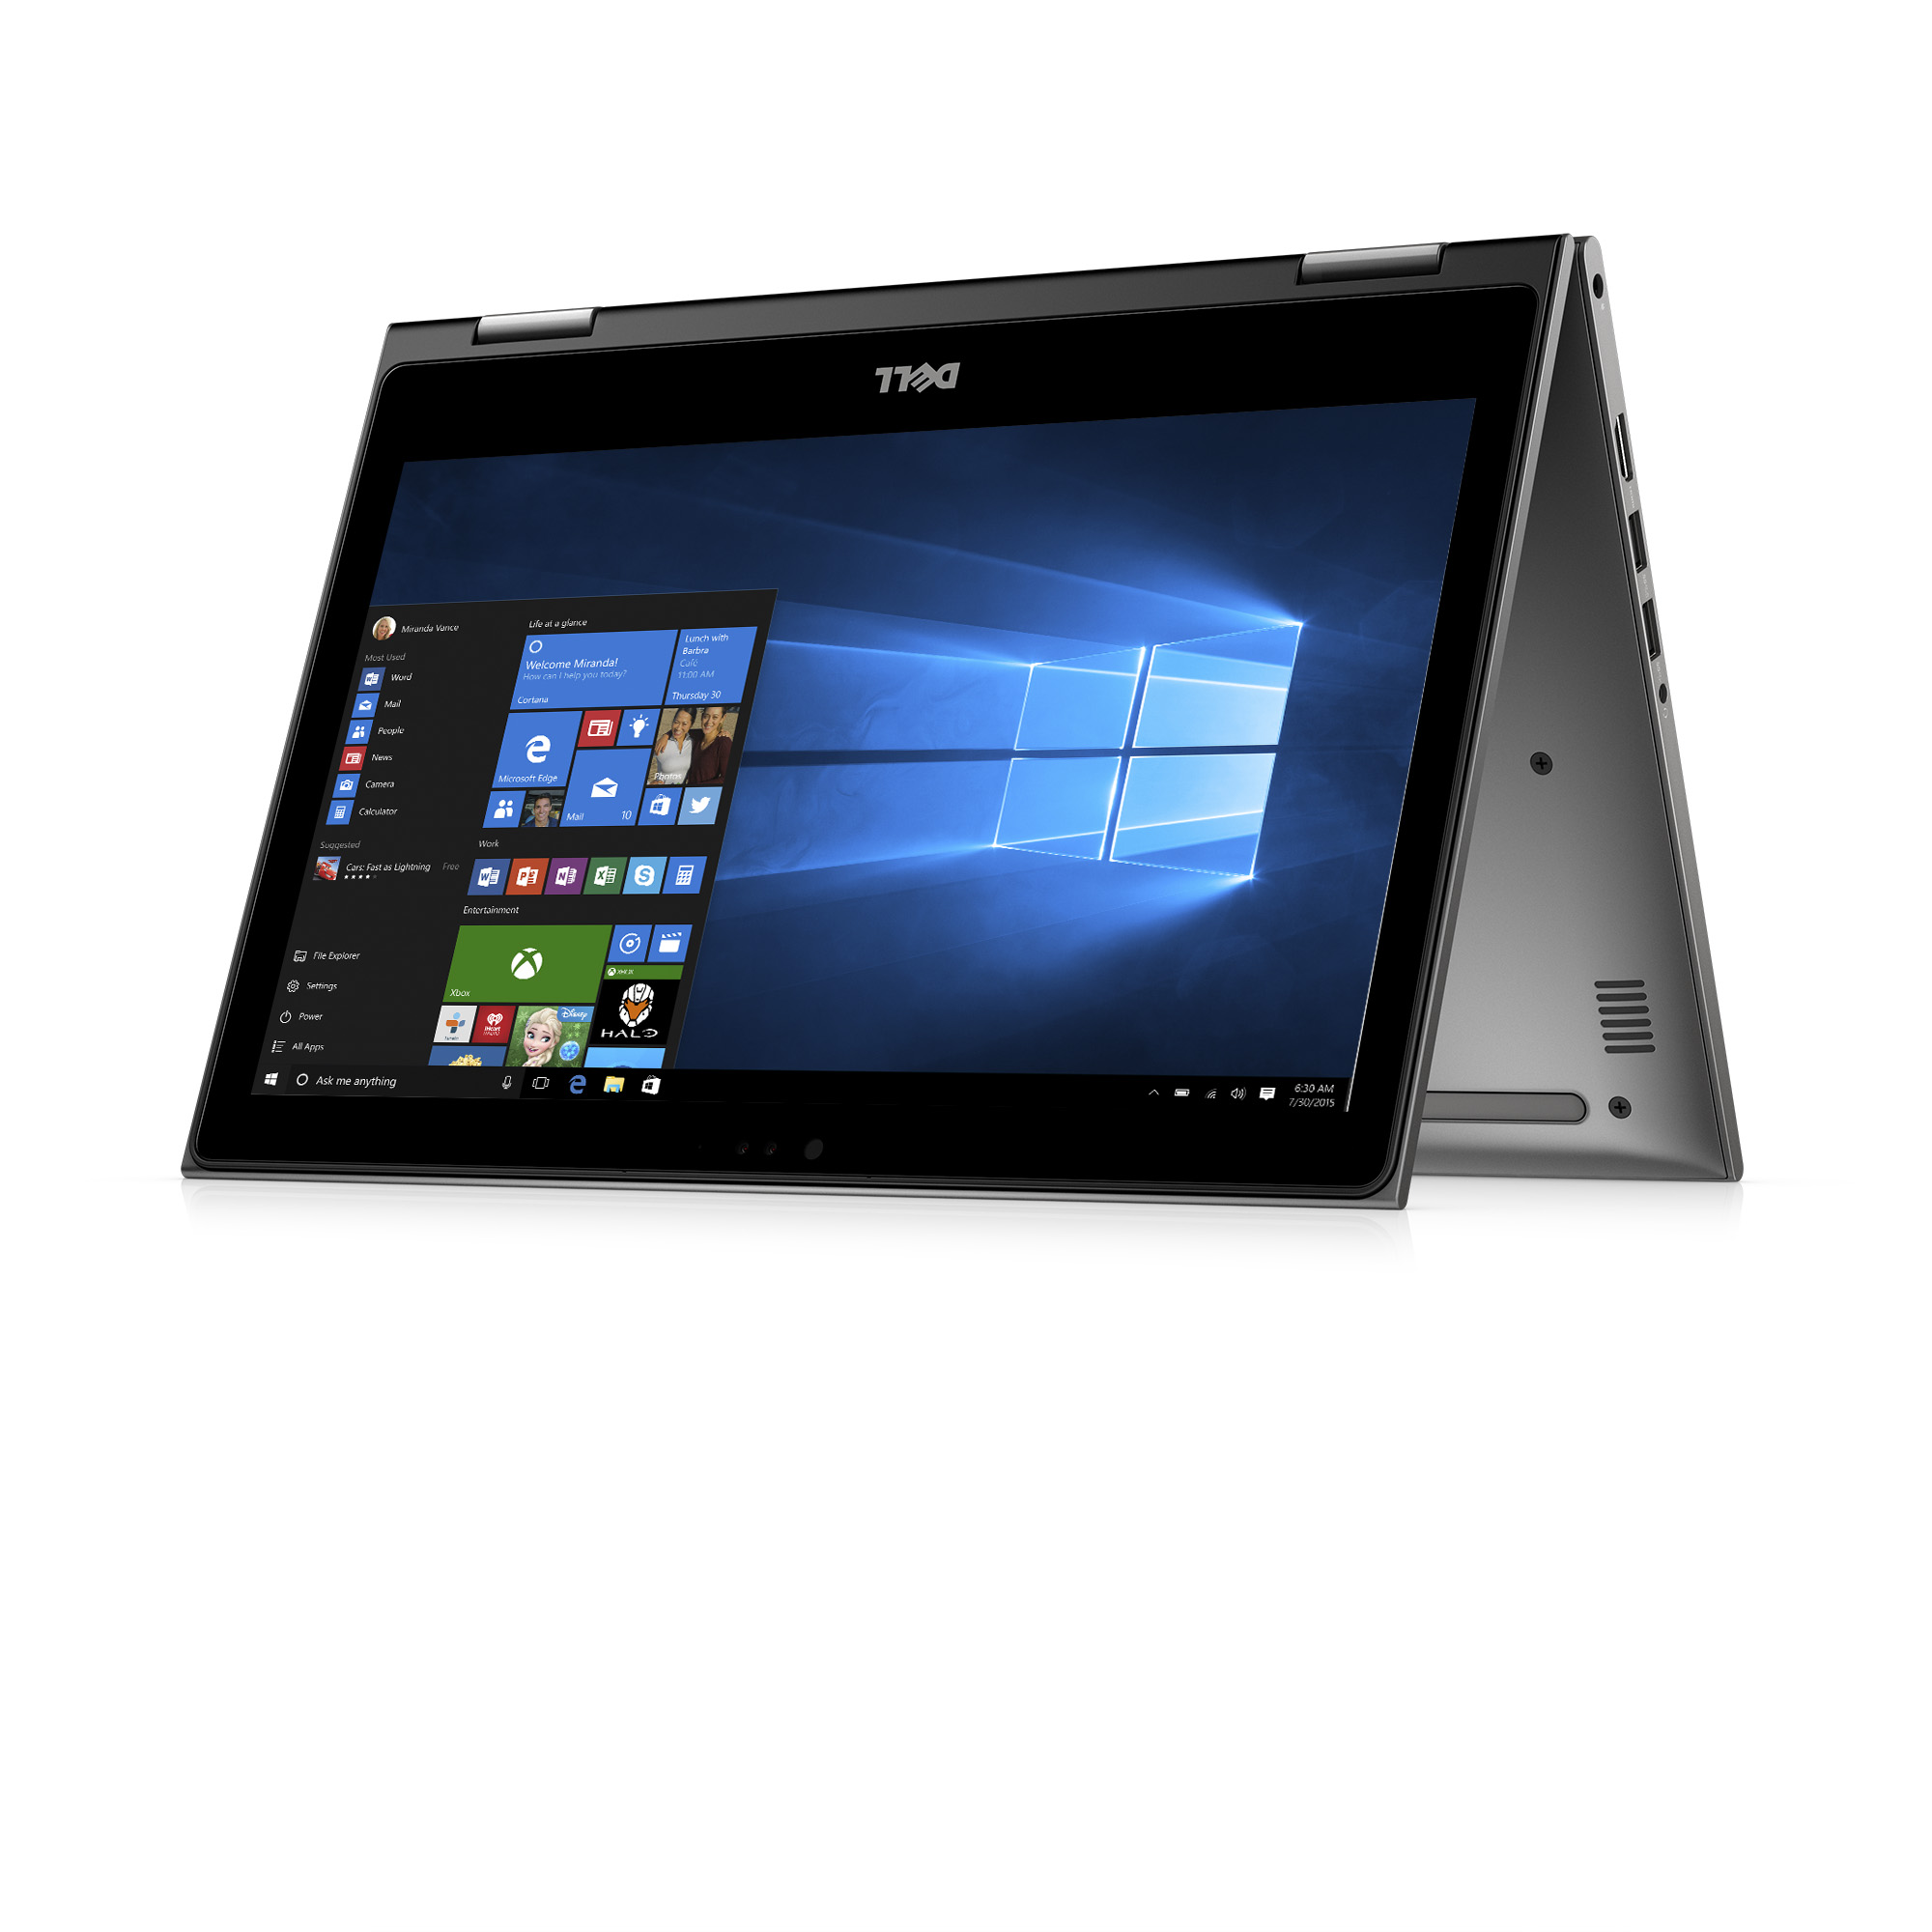 "Dell - Inspiron 13 5000 2-in-1 Touch 13.3"" - Intel Pent 4415U - 4GB Memory - 1TB 5400 RPM HD - Intel HD graphics 610"